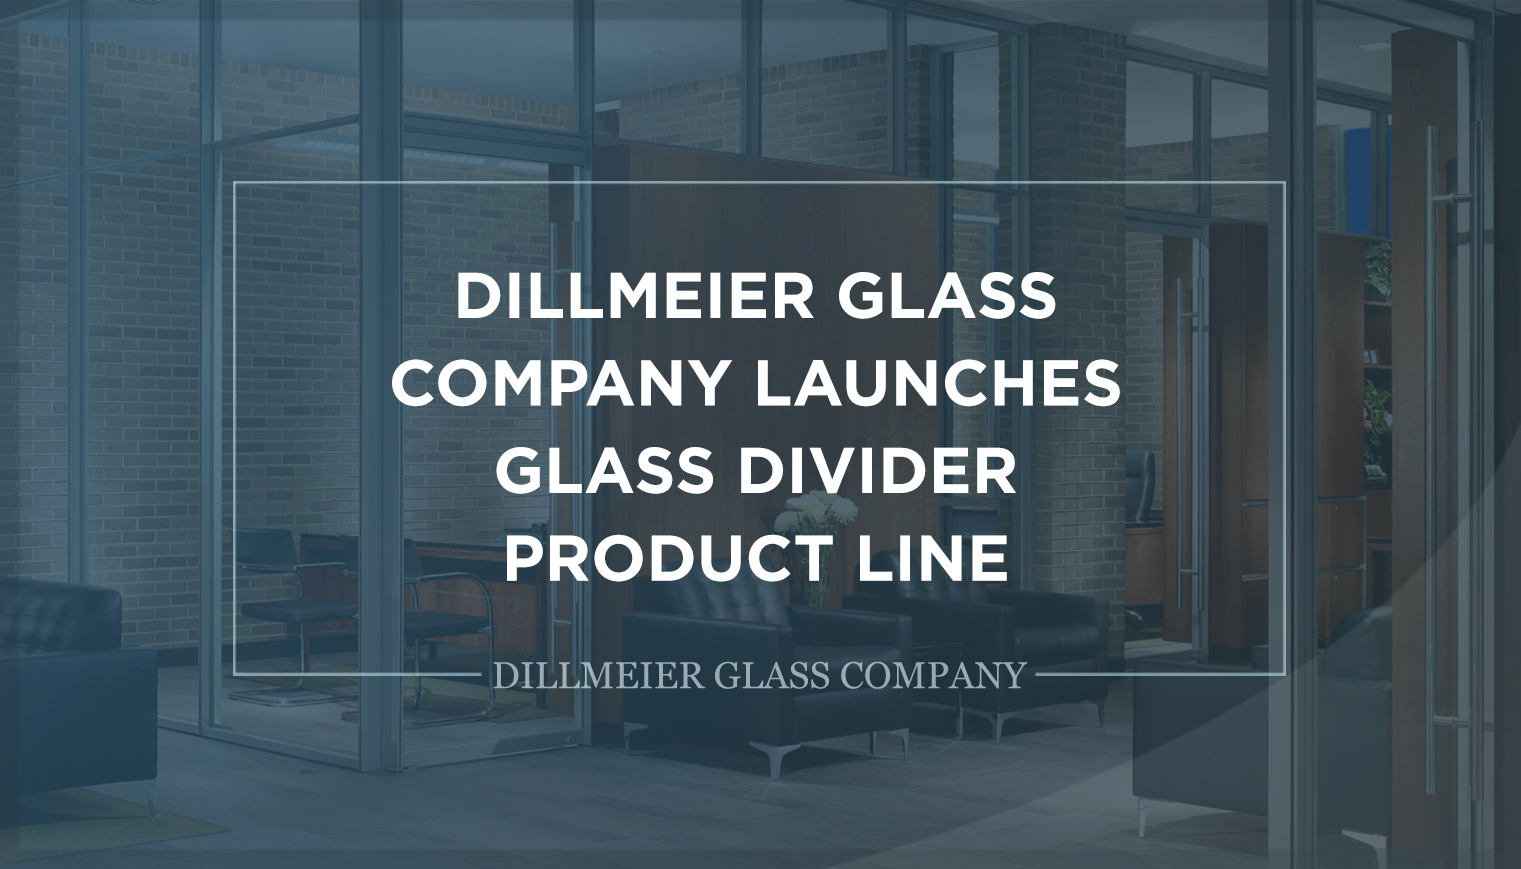 Dillmeier-Glass-Company-Launches-Glass-Divider-Product-Line---Text-Graphic